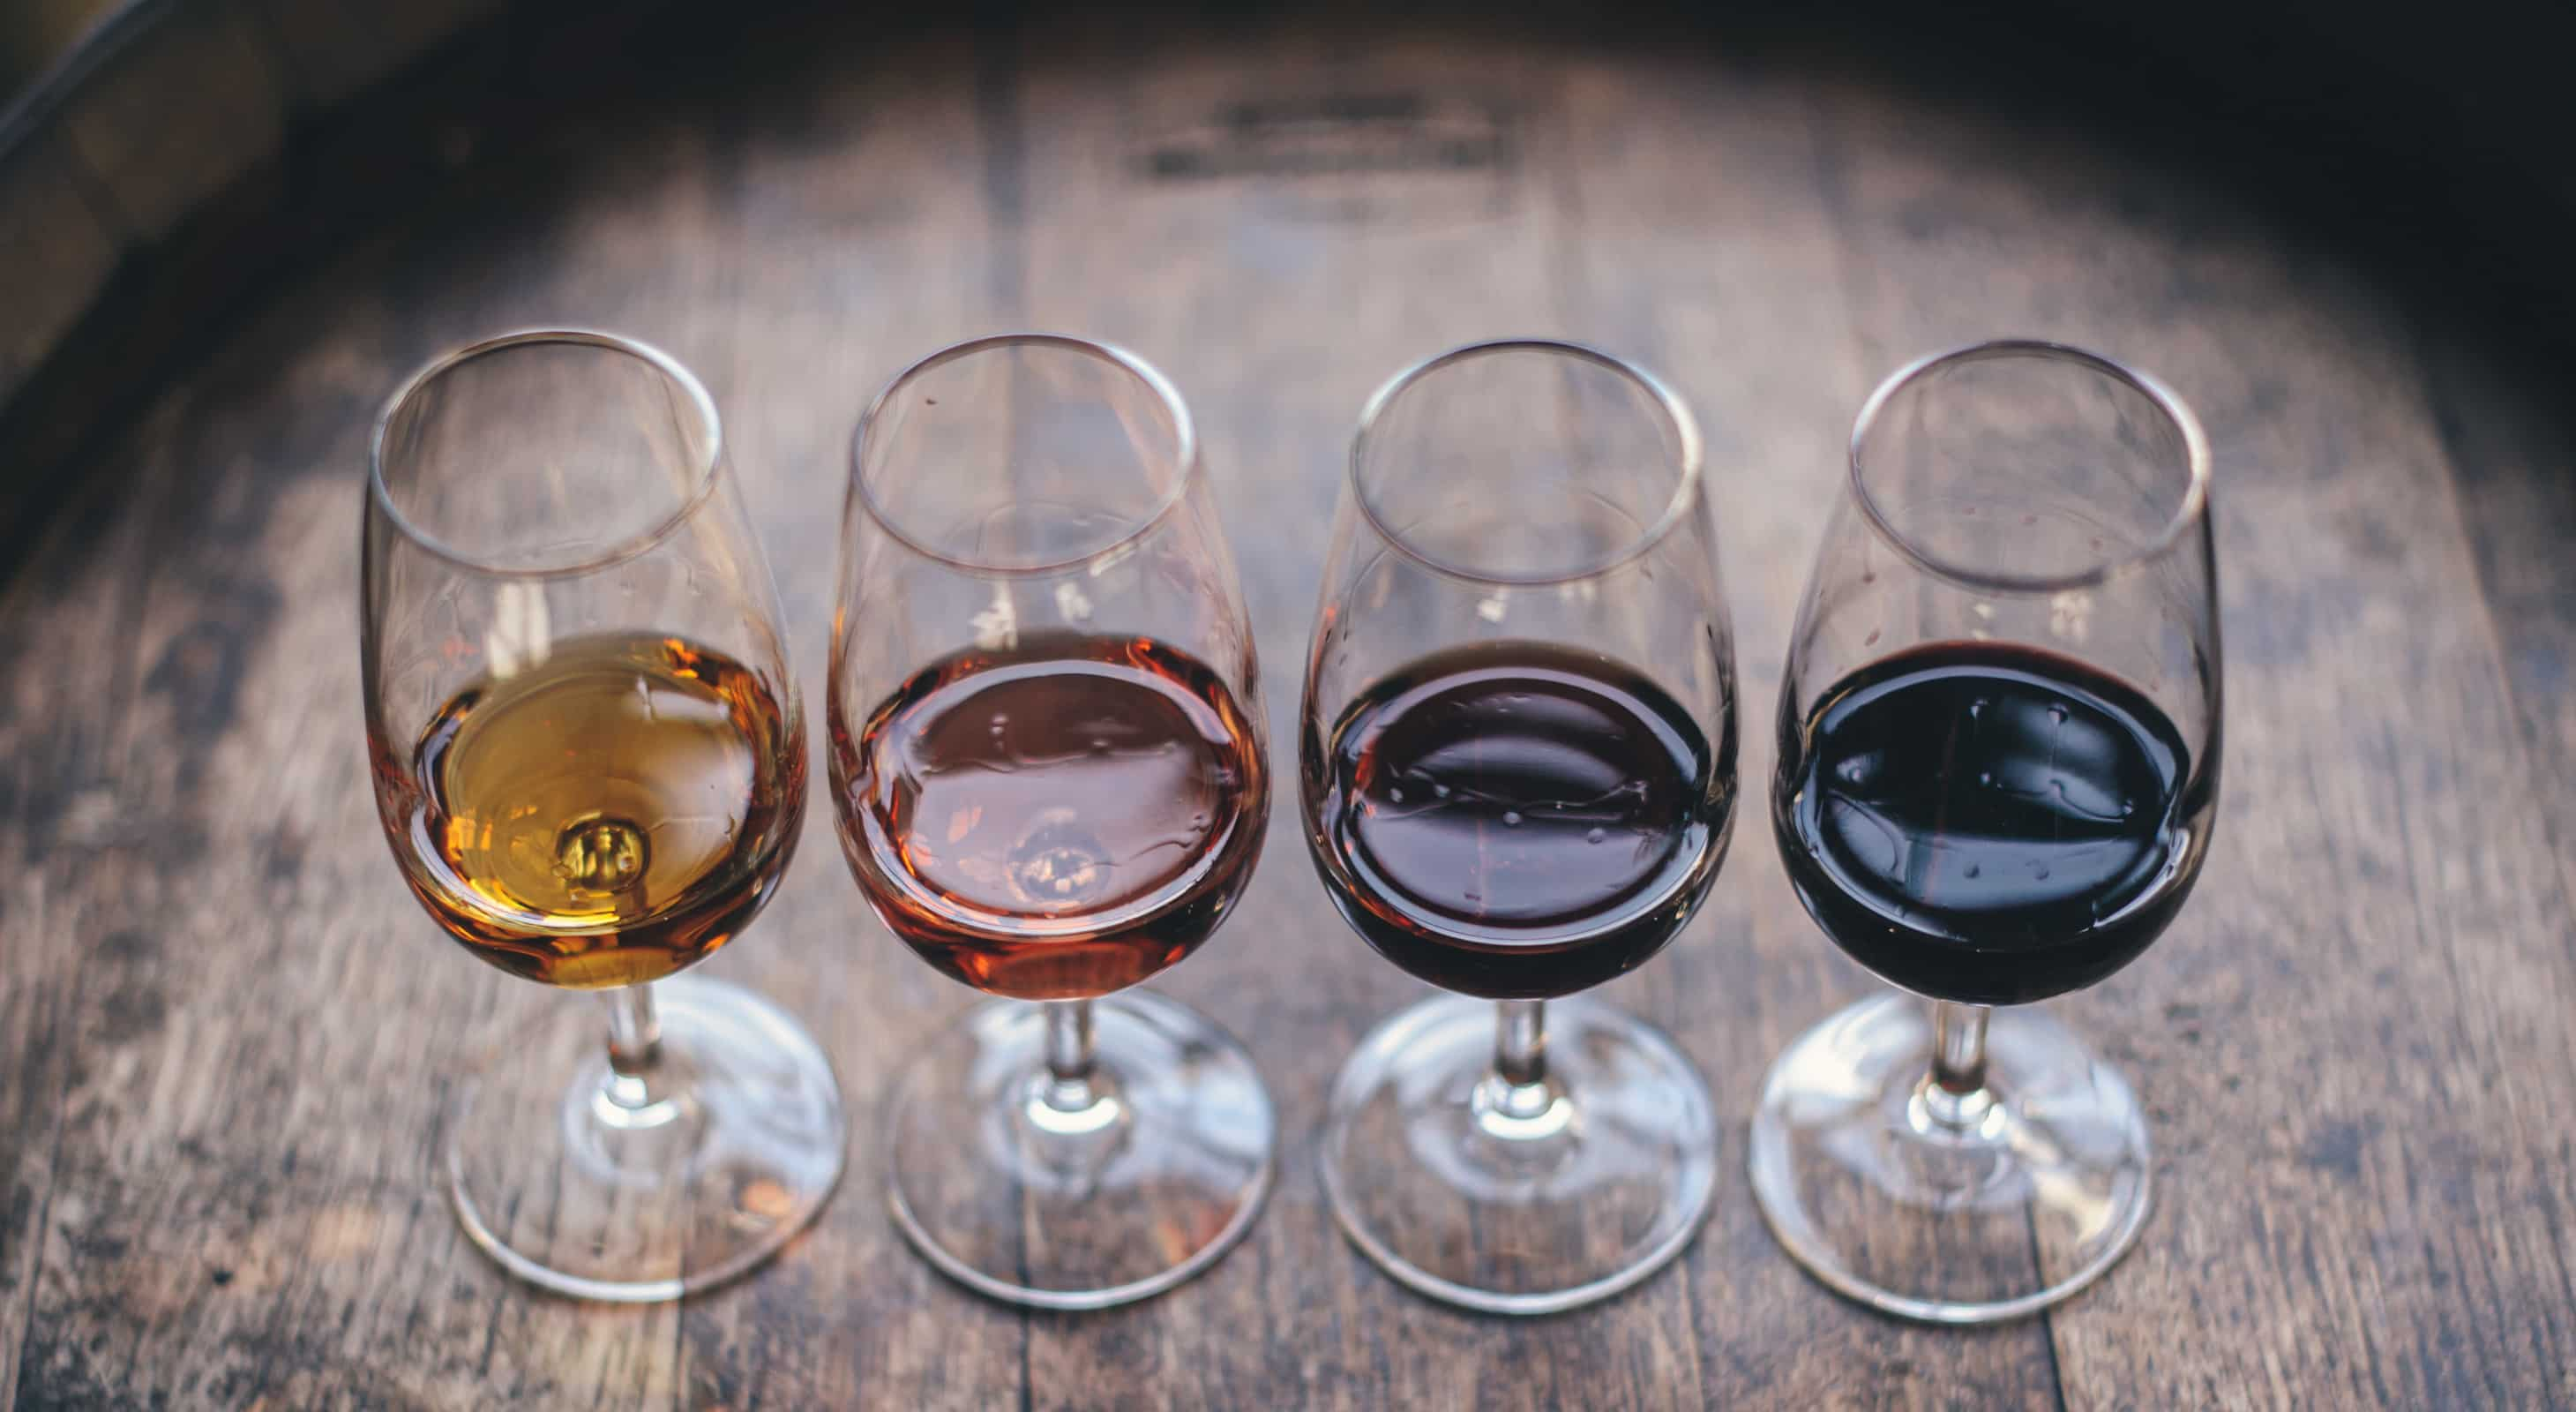 Four glasses of wine on a barrel